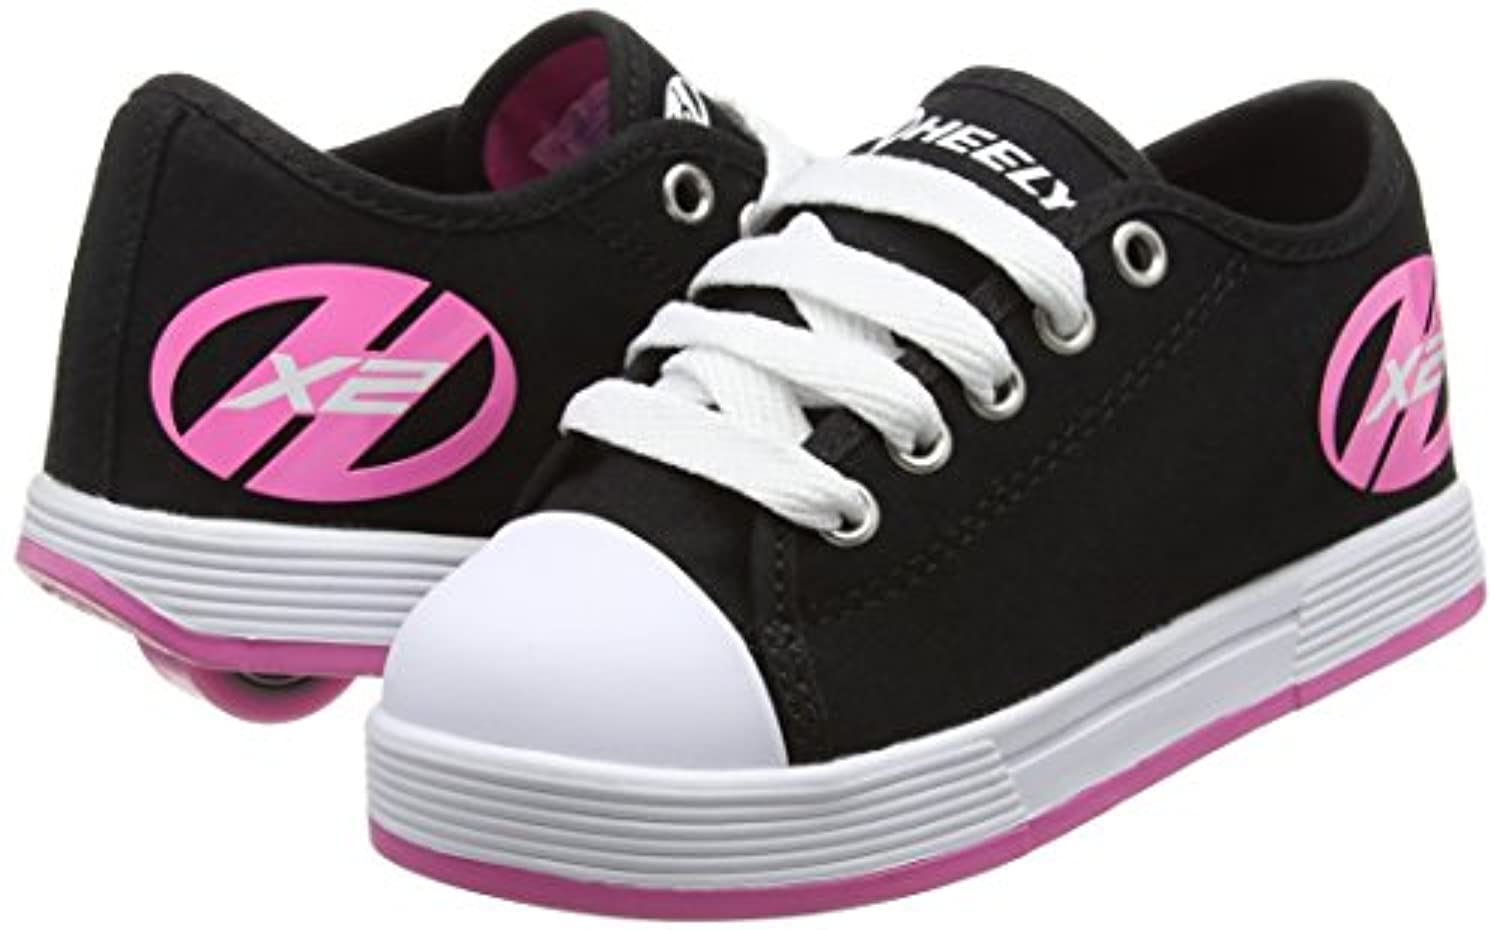 Heelys Fresh 770497, Girls' Sneakers, multi (Black/Pink), 1 UK (33 EU)